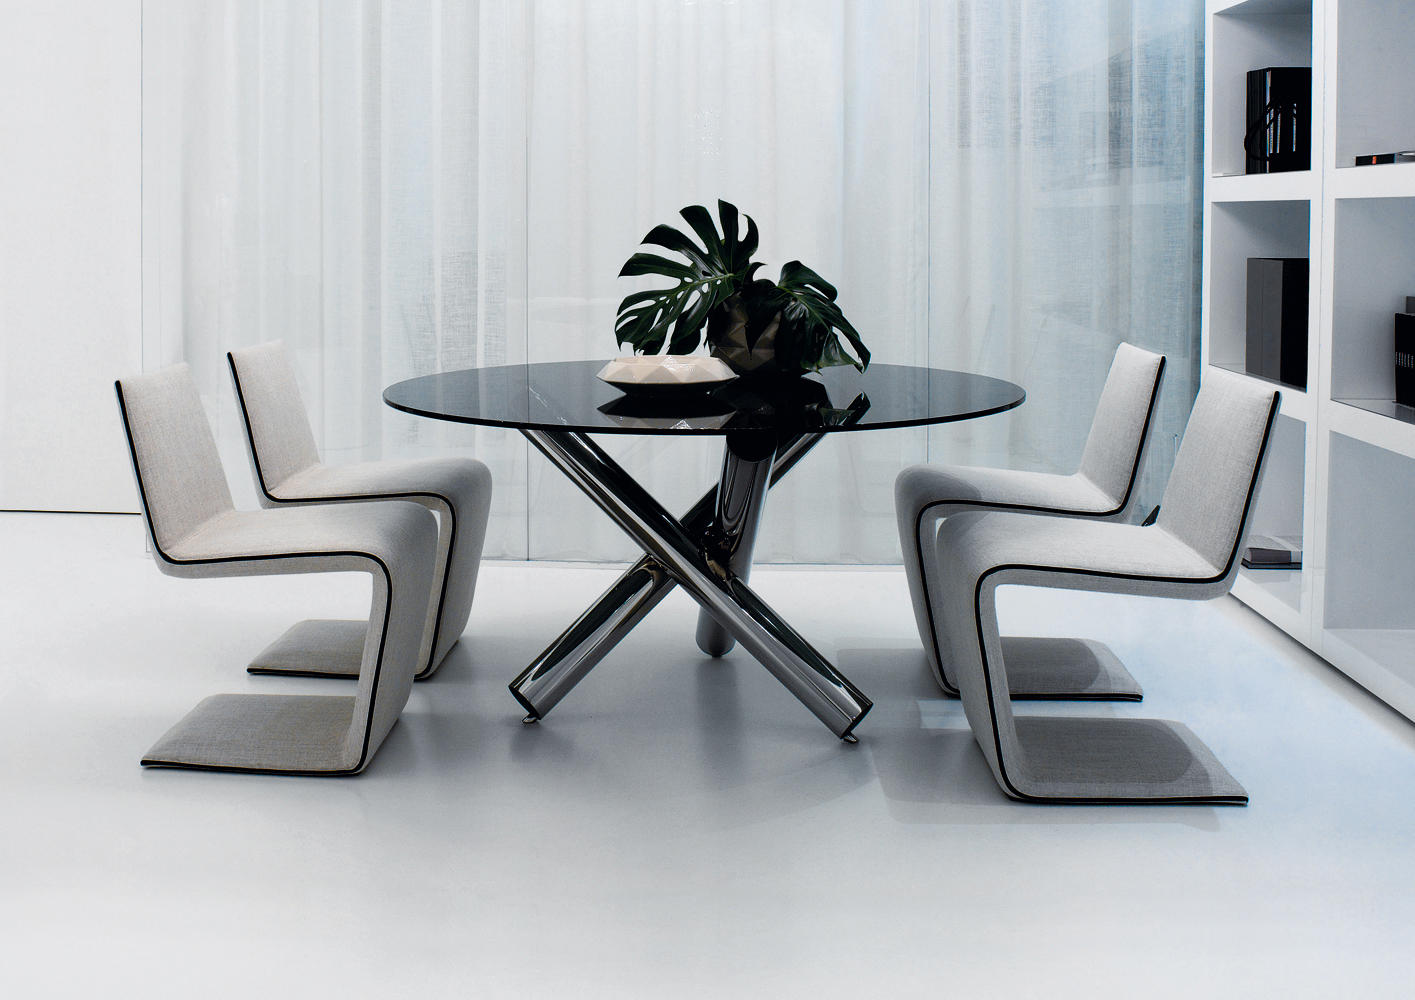 Phillips chair chairs from minotti architonic for Sedie design furniture e commerce